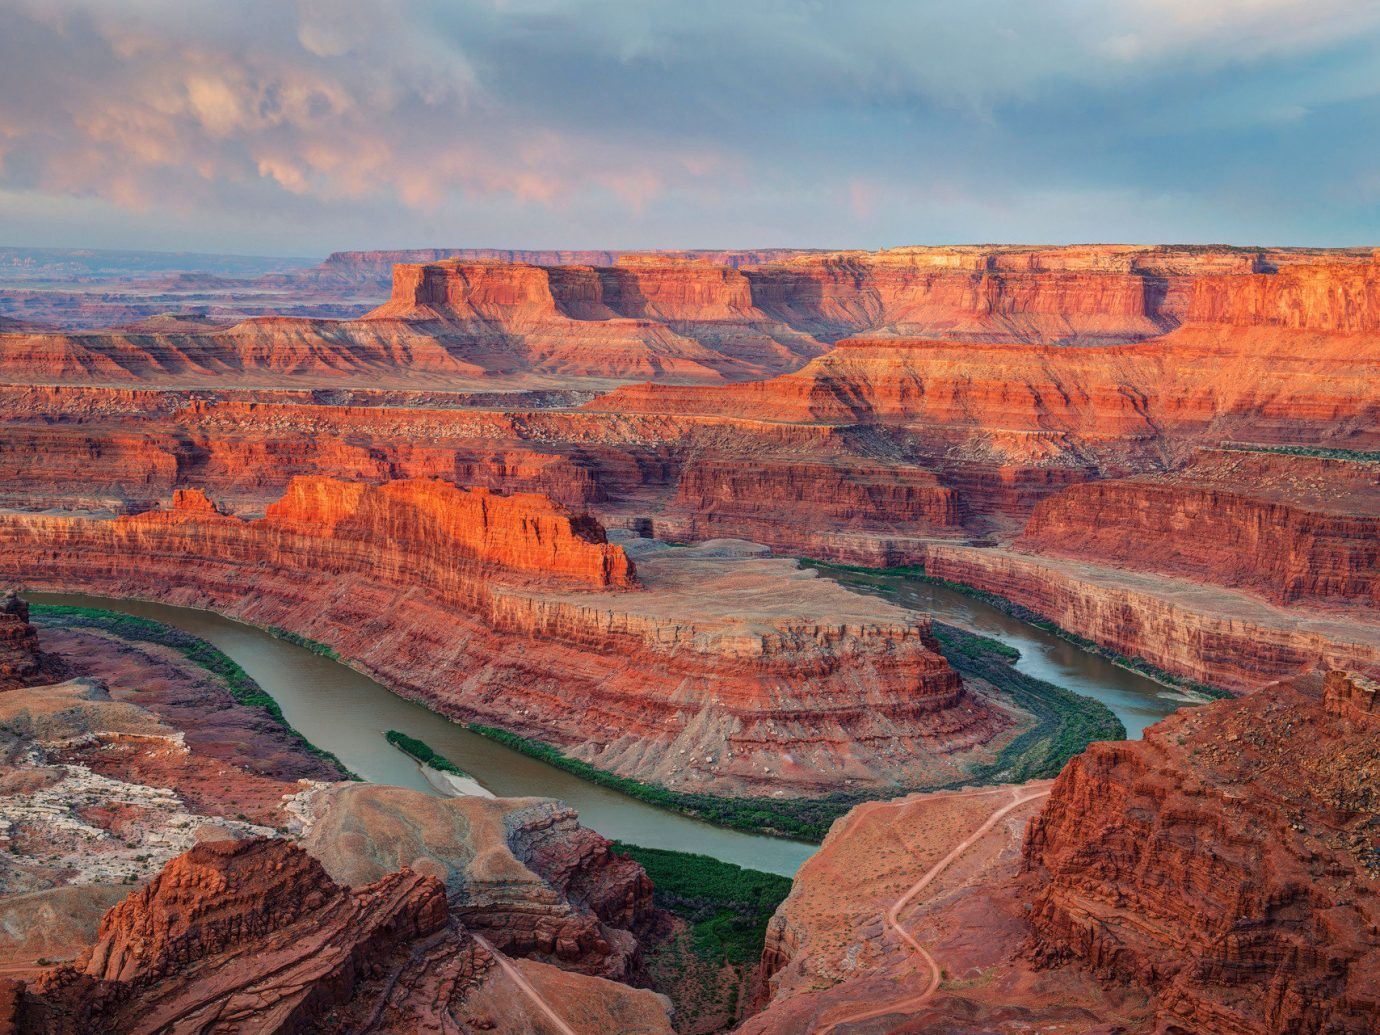 National Parks Offbeat Outdoors + Adventure Road Trips Trip Ideas valley canyon mountain sky geographical feature Nature landform outdoor wilderness butte badlands geology rock landscape plateau cliff wadi formation national park arch terrain orange